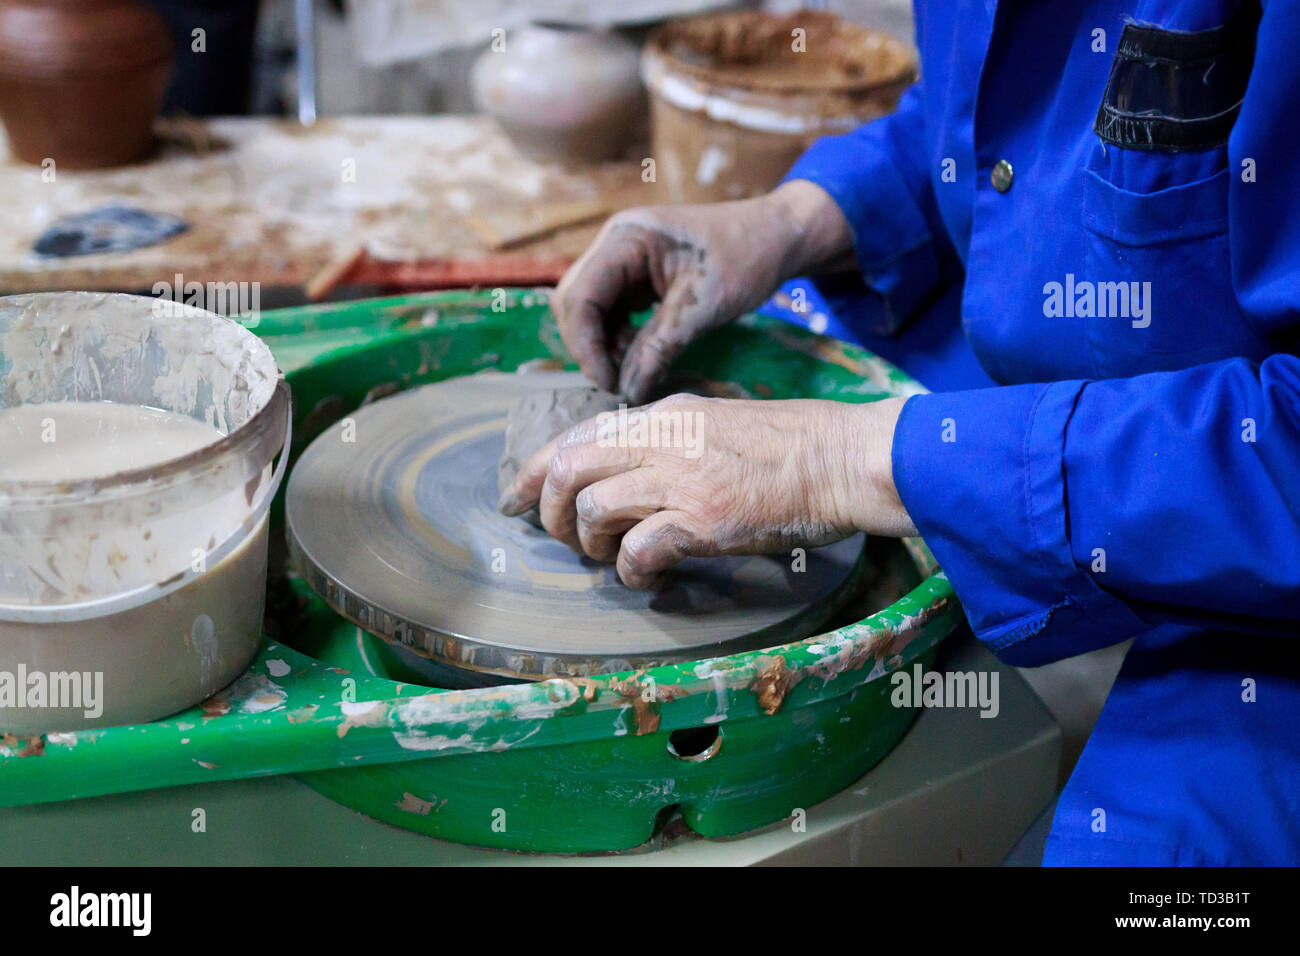 A novice student in the first lesson in pottery tries to make a product from clay on a potter's wheel. reportage. Stock Photo